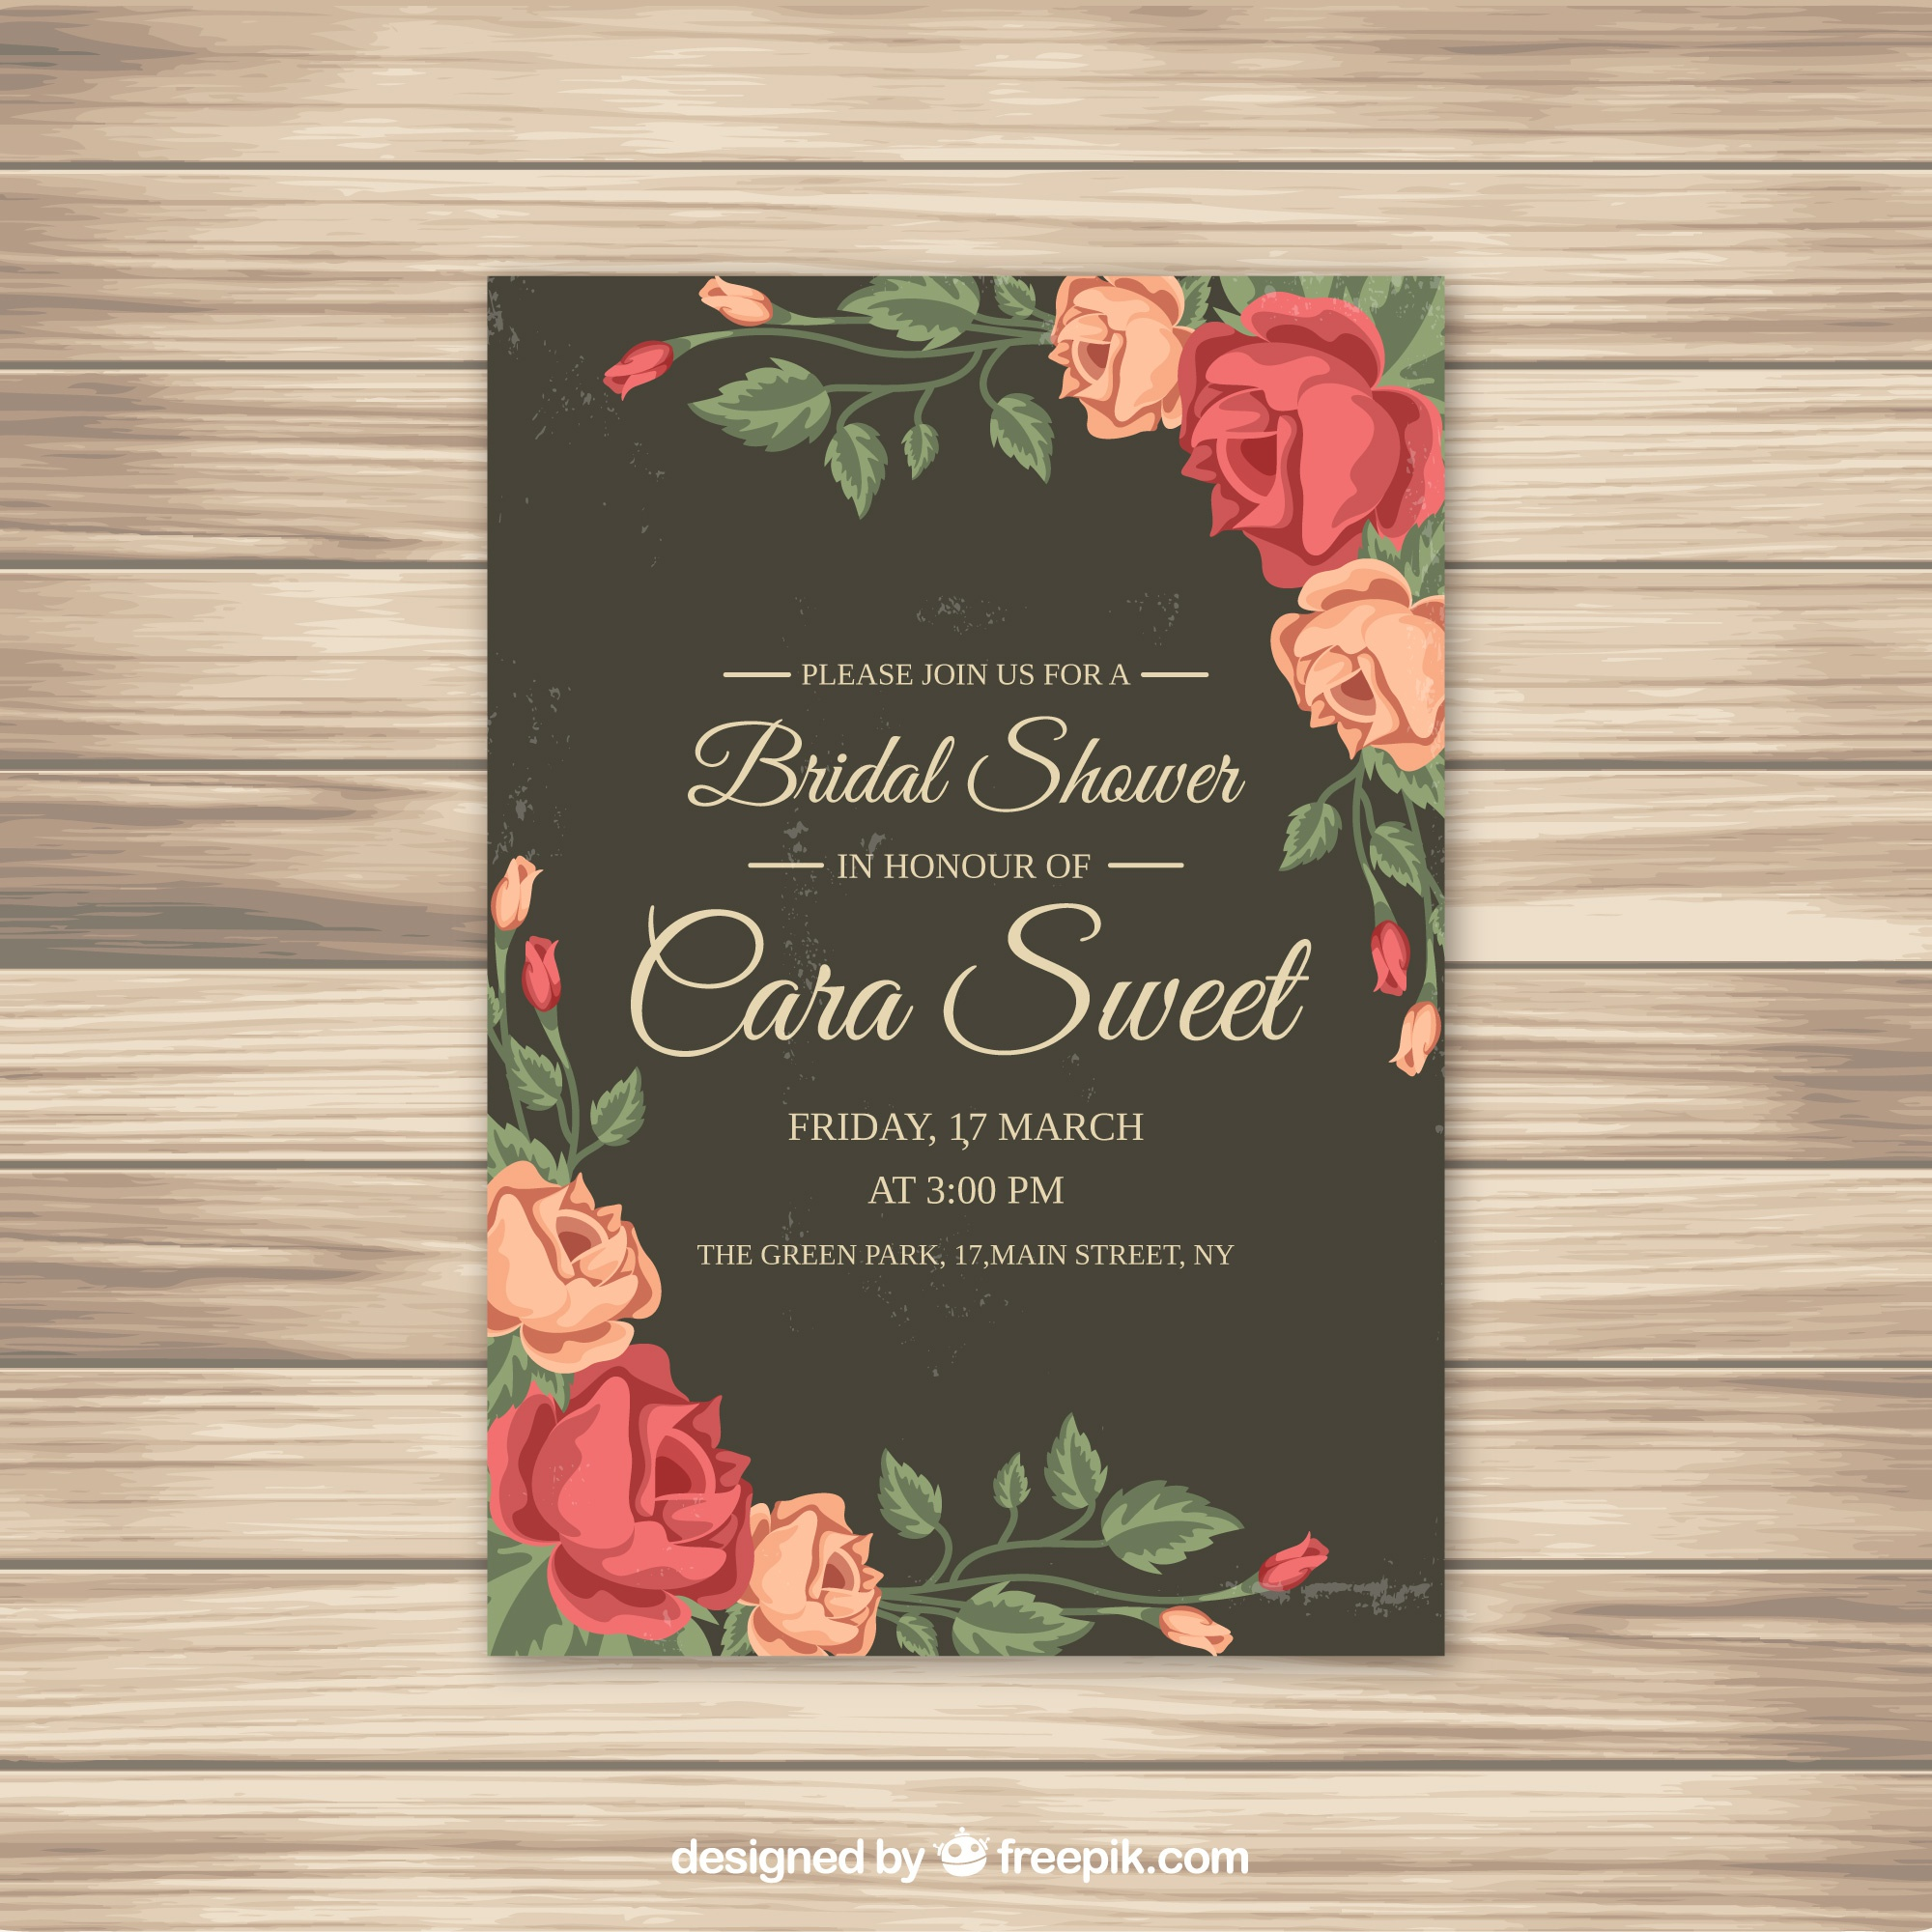 Bridal shower invitation with roses